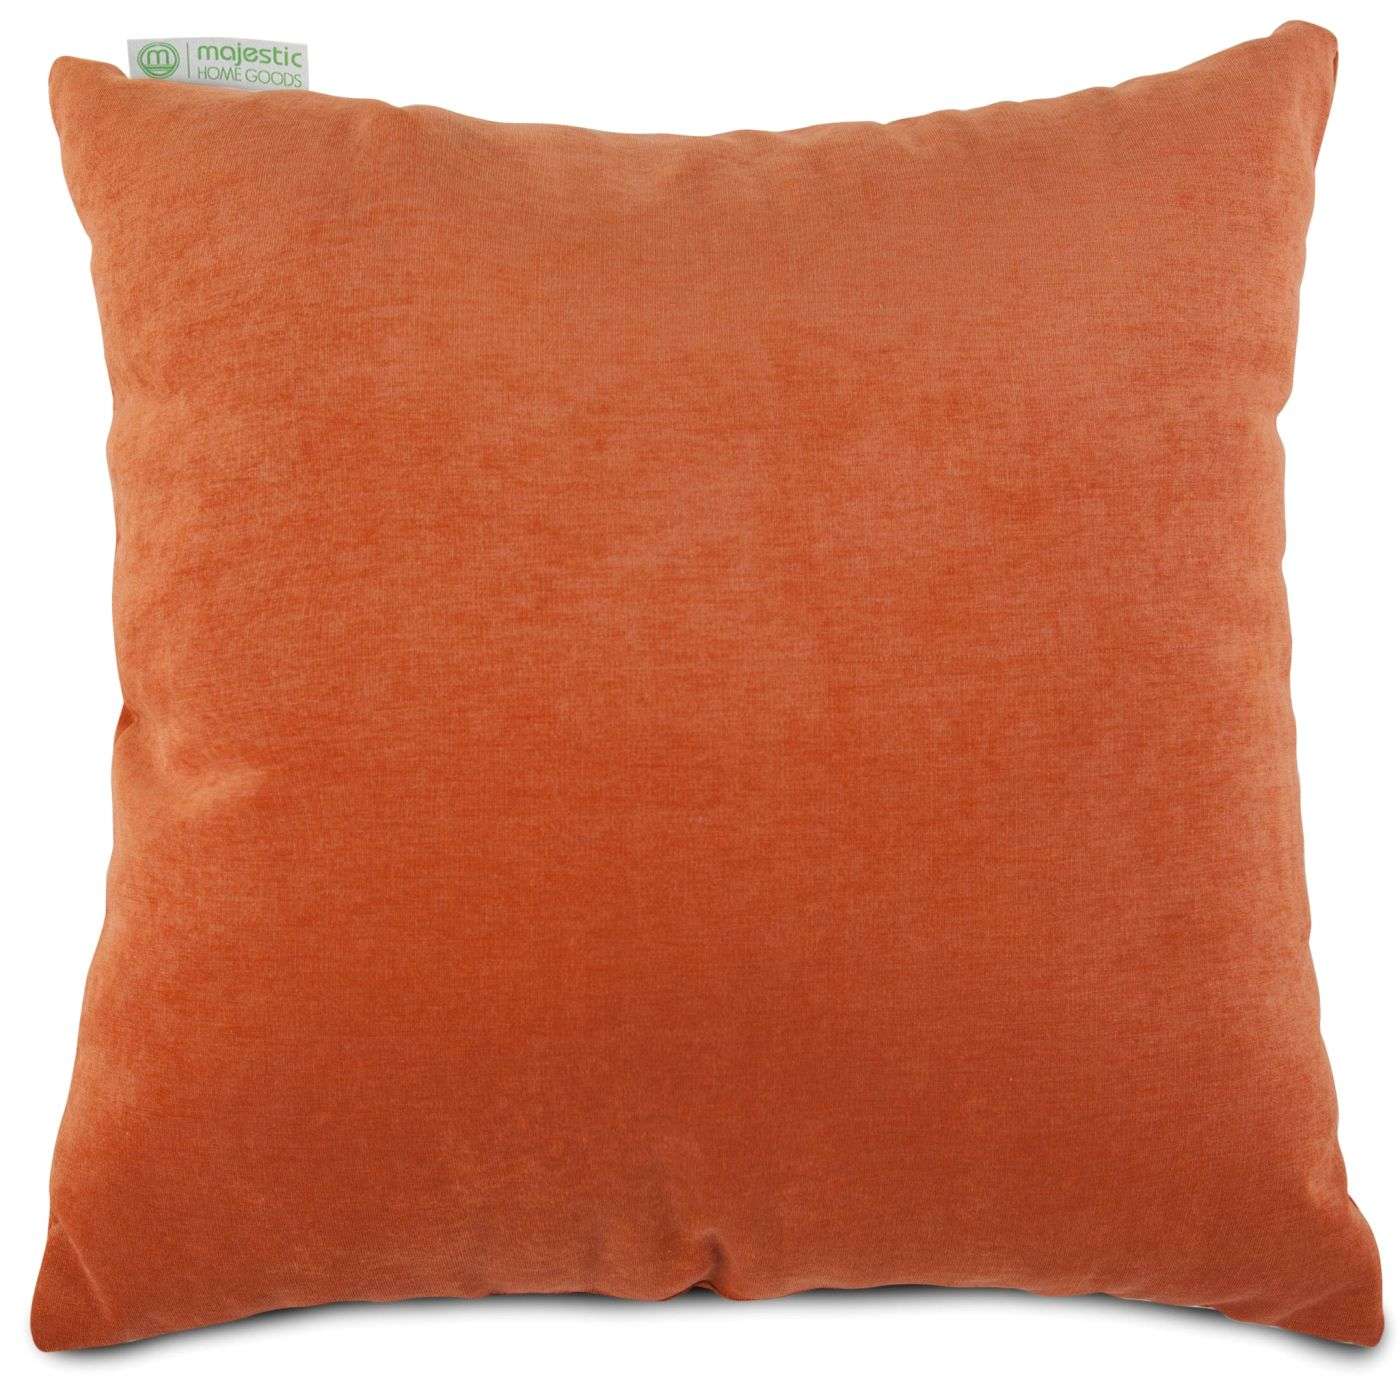 Majestic Home Villa Orange Extra Large Pillow 85907260924. Only $47.60 at Contemporary Furniture ...